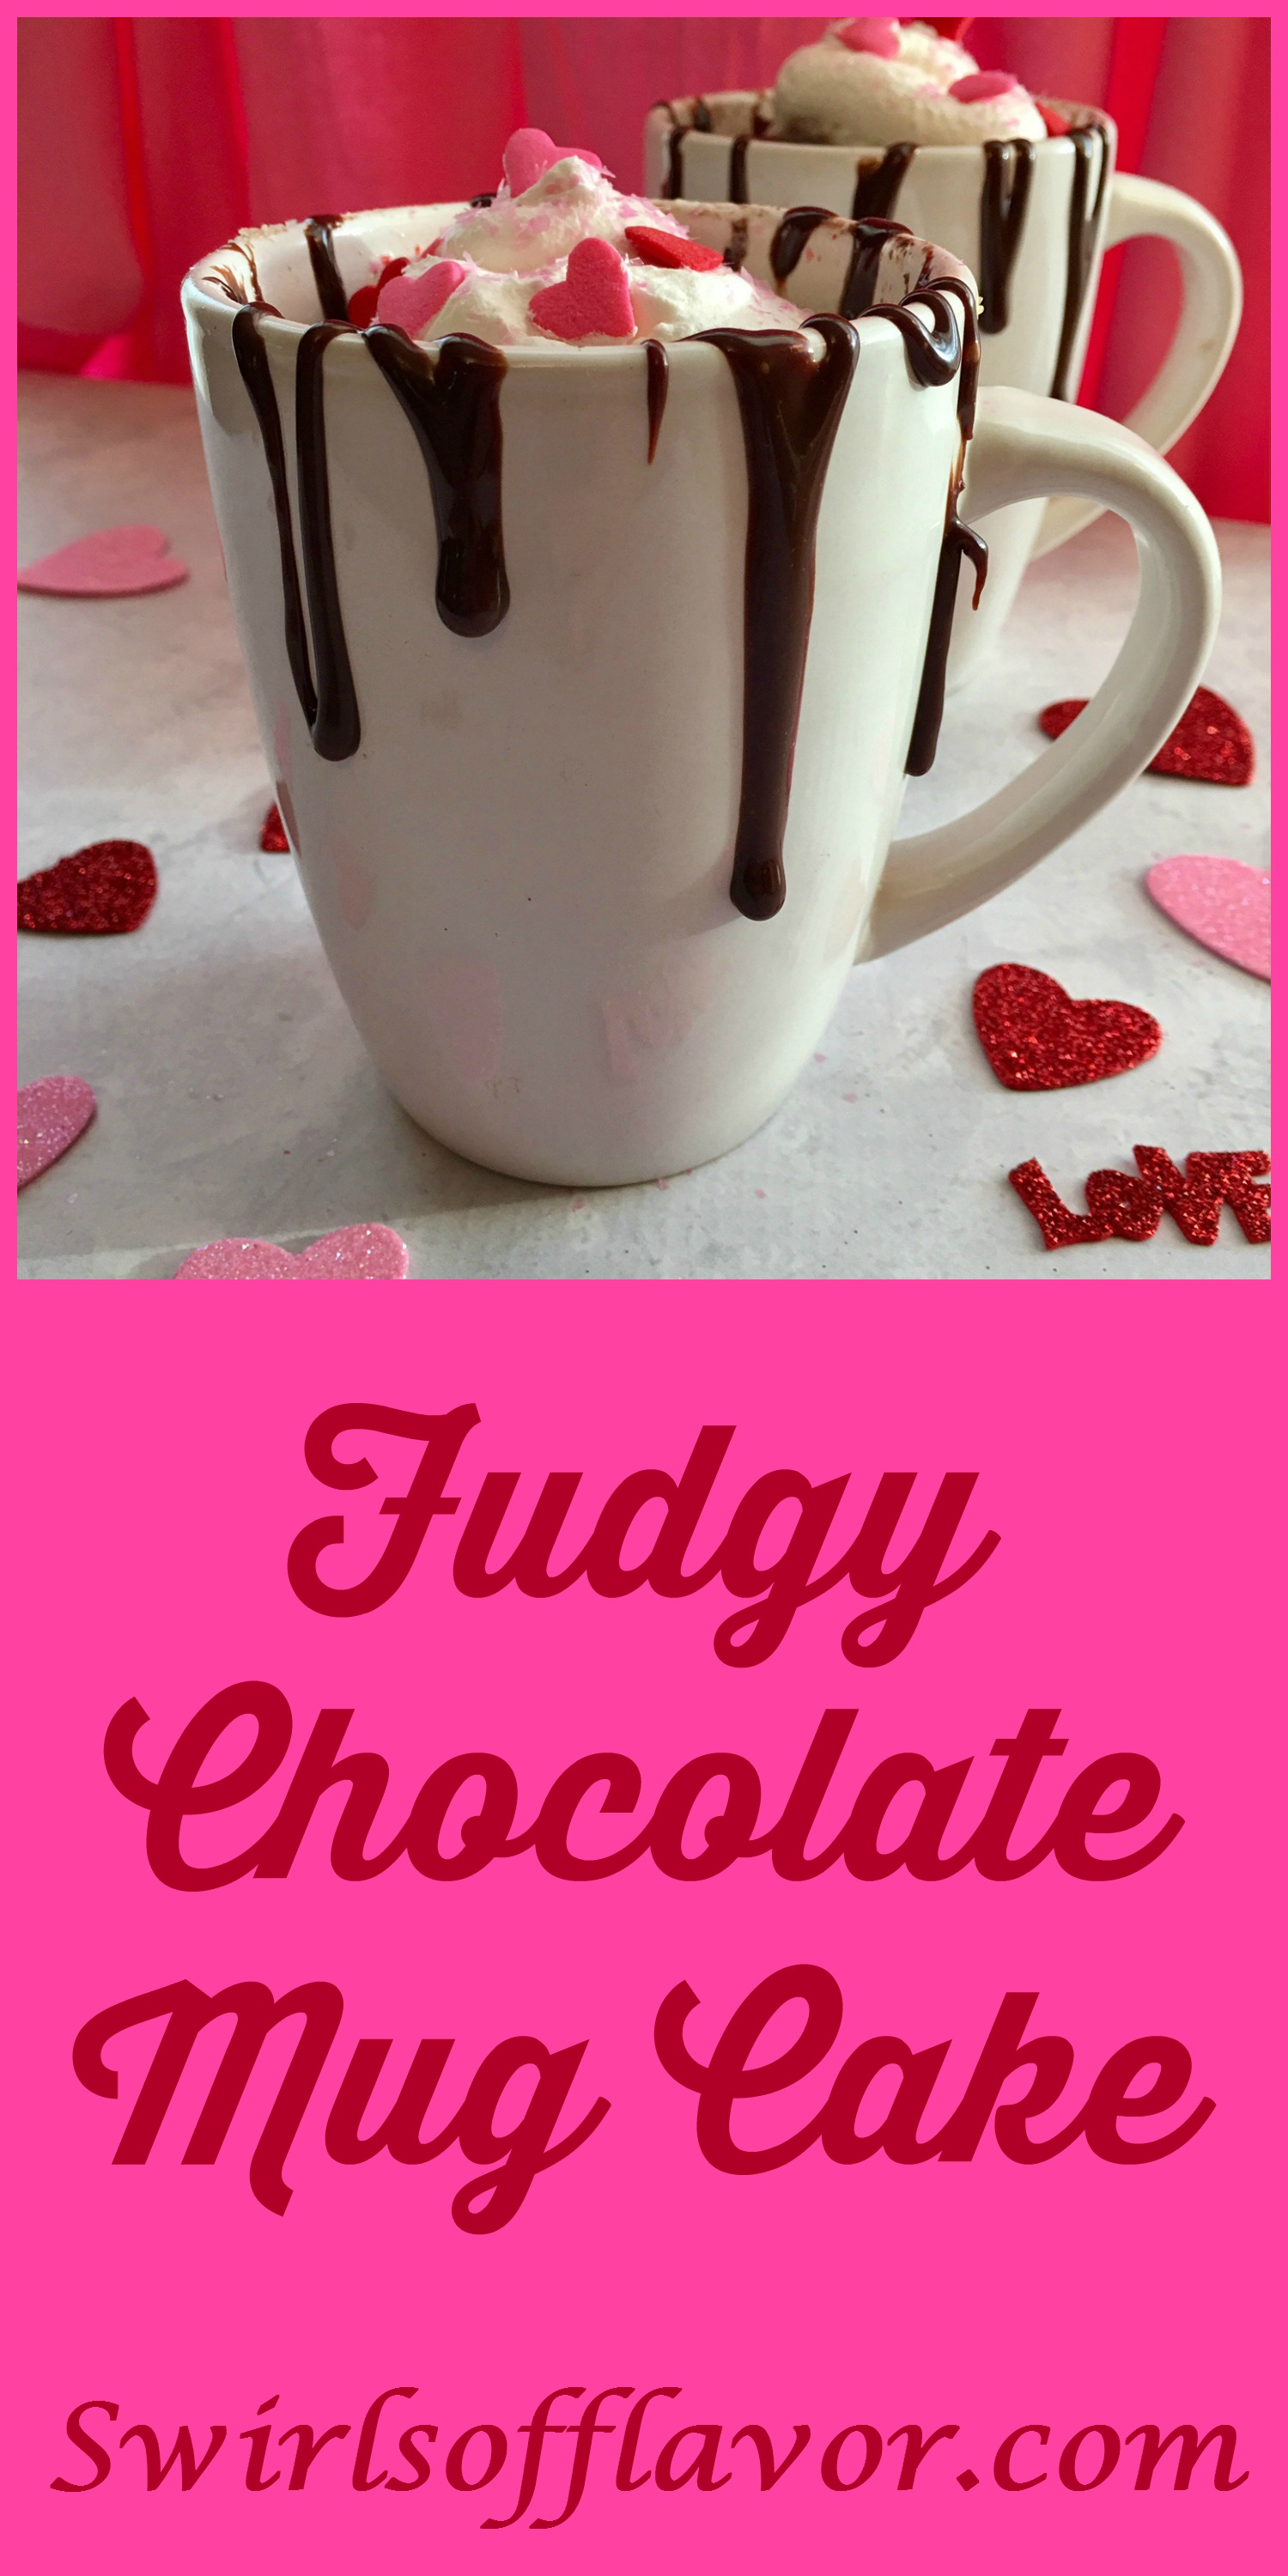 Fudgy Chocolate Mug Cake is a warm chocolate cake with bits of  mini chocolate chips throughout that microwaves into a divine dessert that's sure to impress your special valentine!. #chocolate  #dessert  #Mug Cake #Valentine's Day #single serving #easy recipe #chocolate chips #microwave #swirlsofflavor